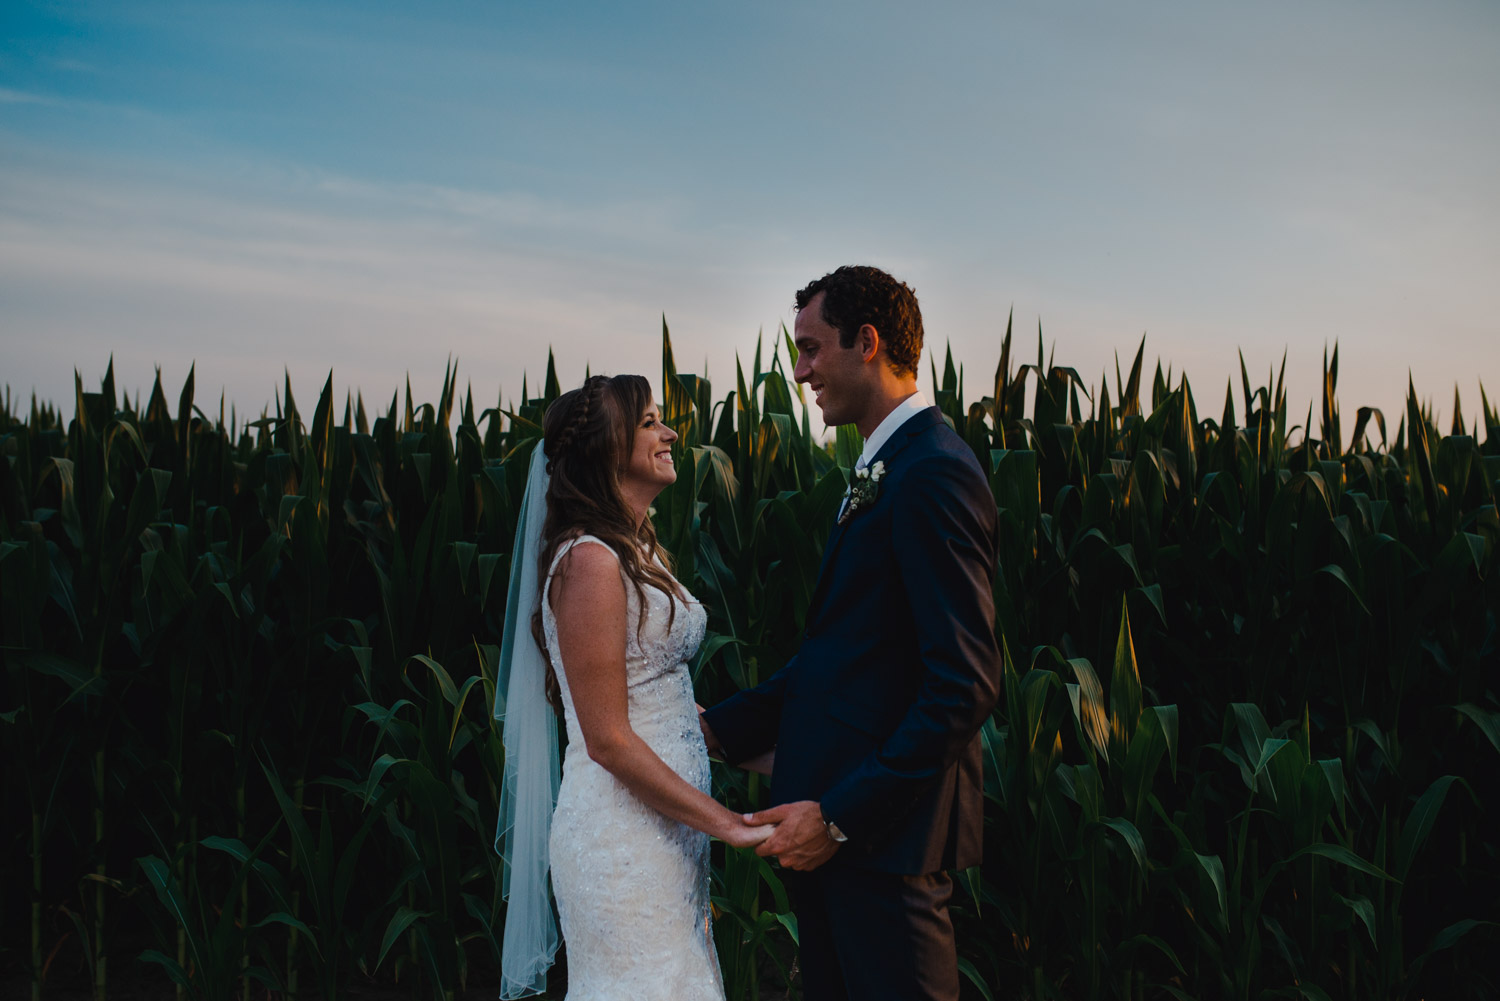 The bride and groom looking at each other and laughing in front of a cornfield at sunset